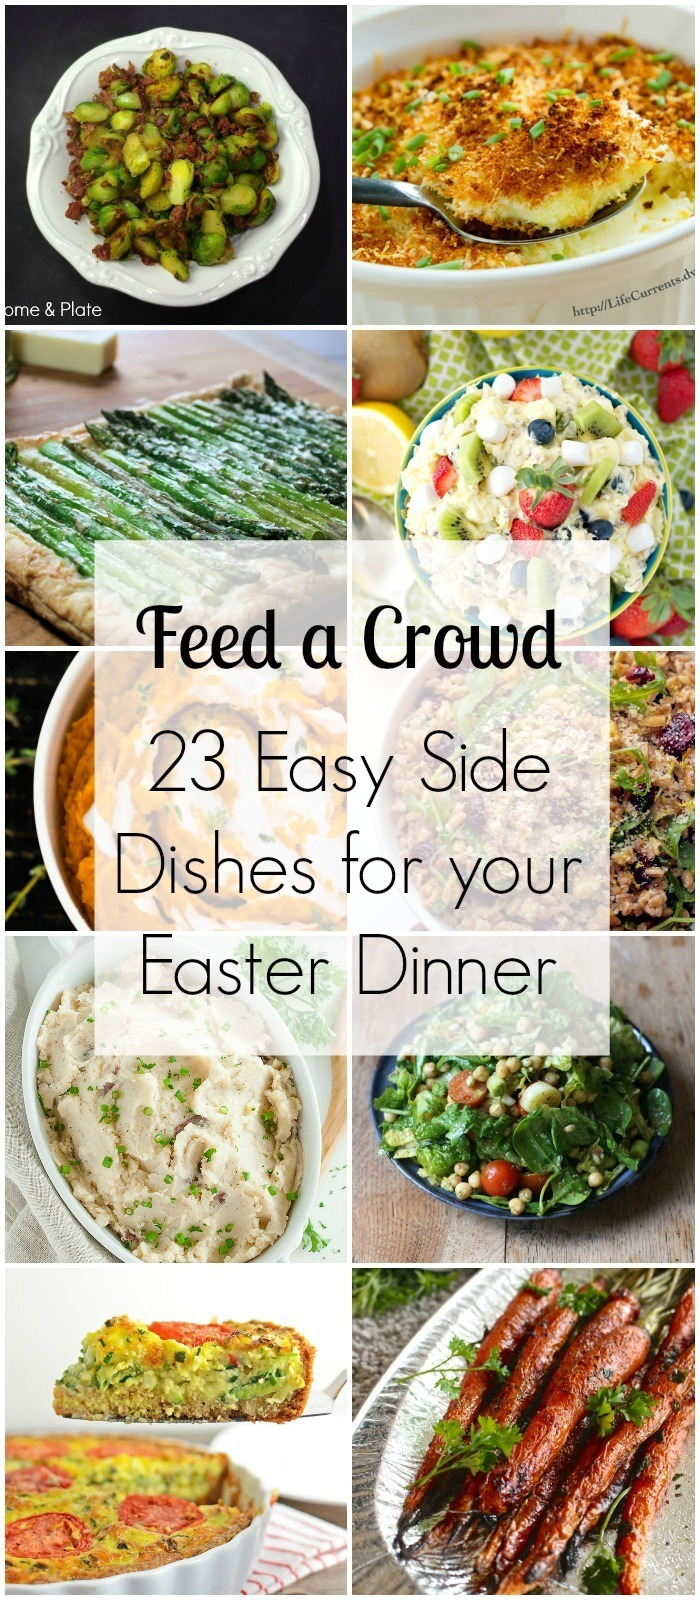 23 Easy Side Dishes for your Easter Dinner - Feed a Crowd